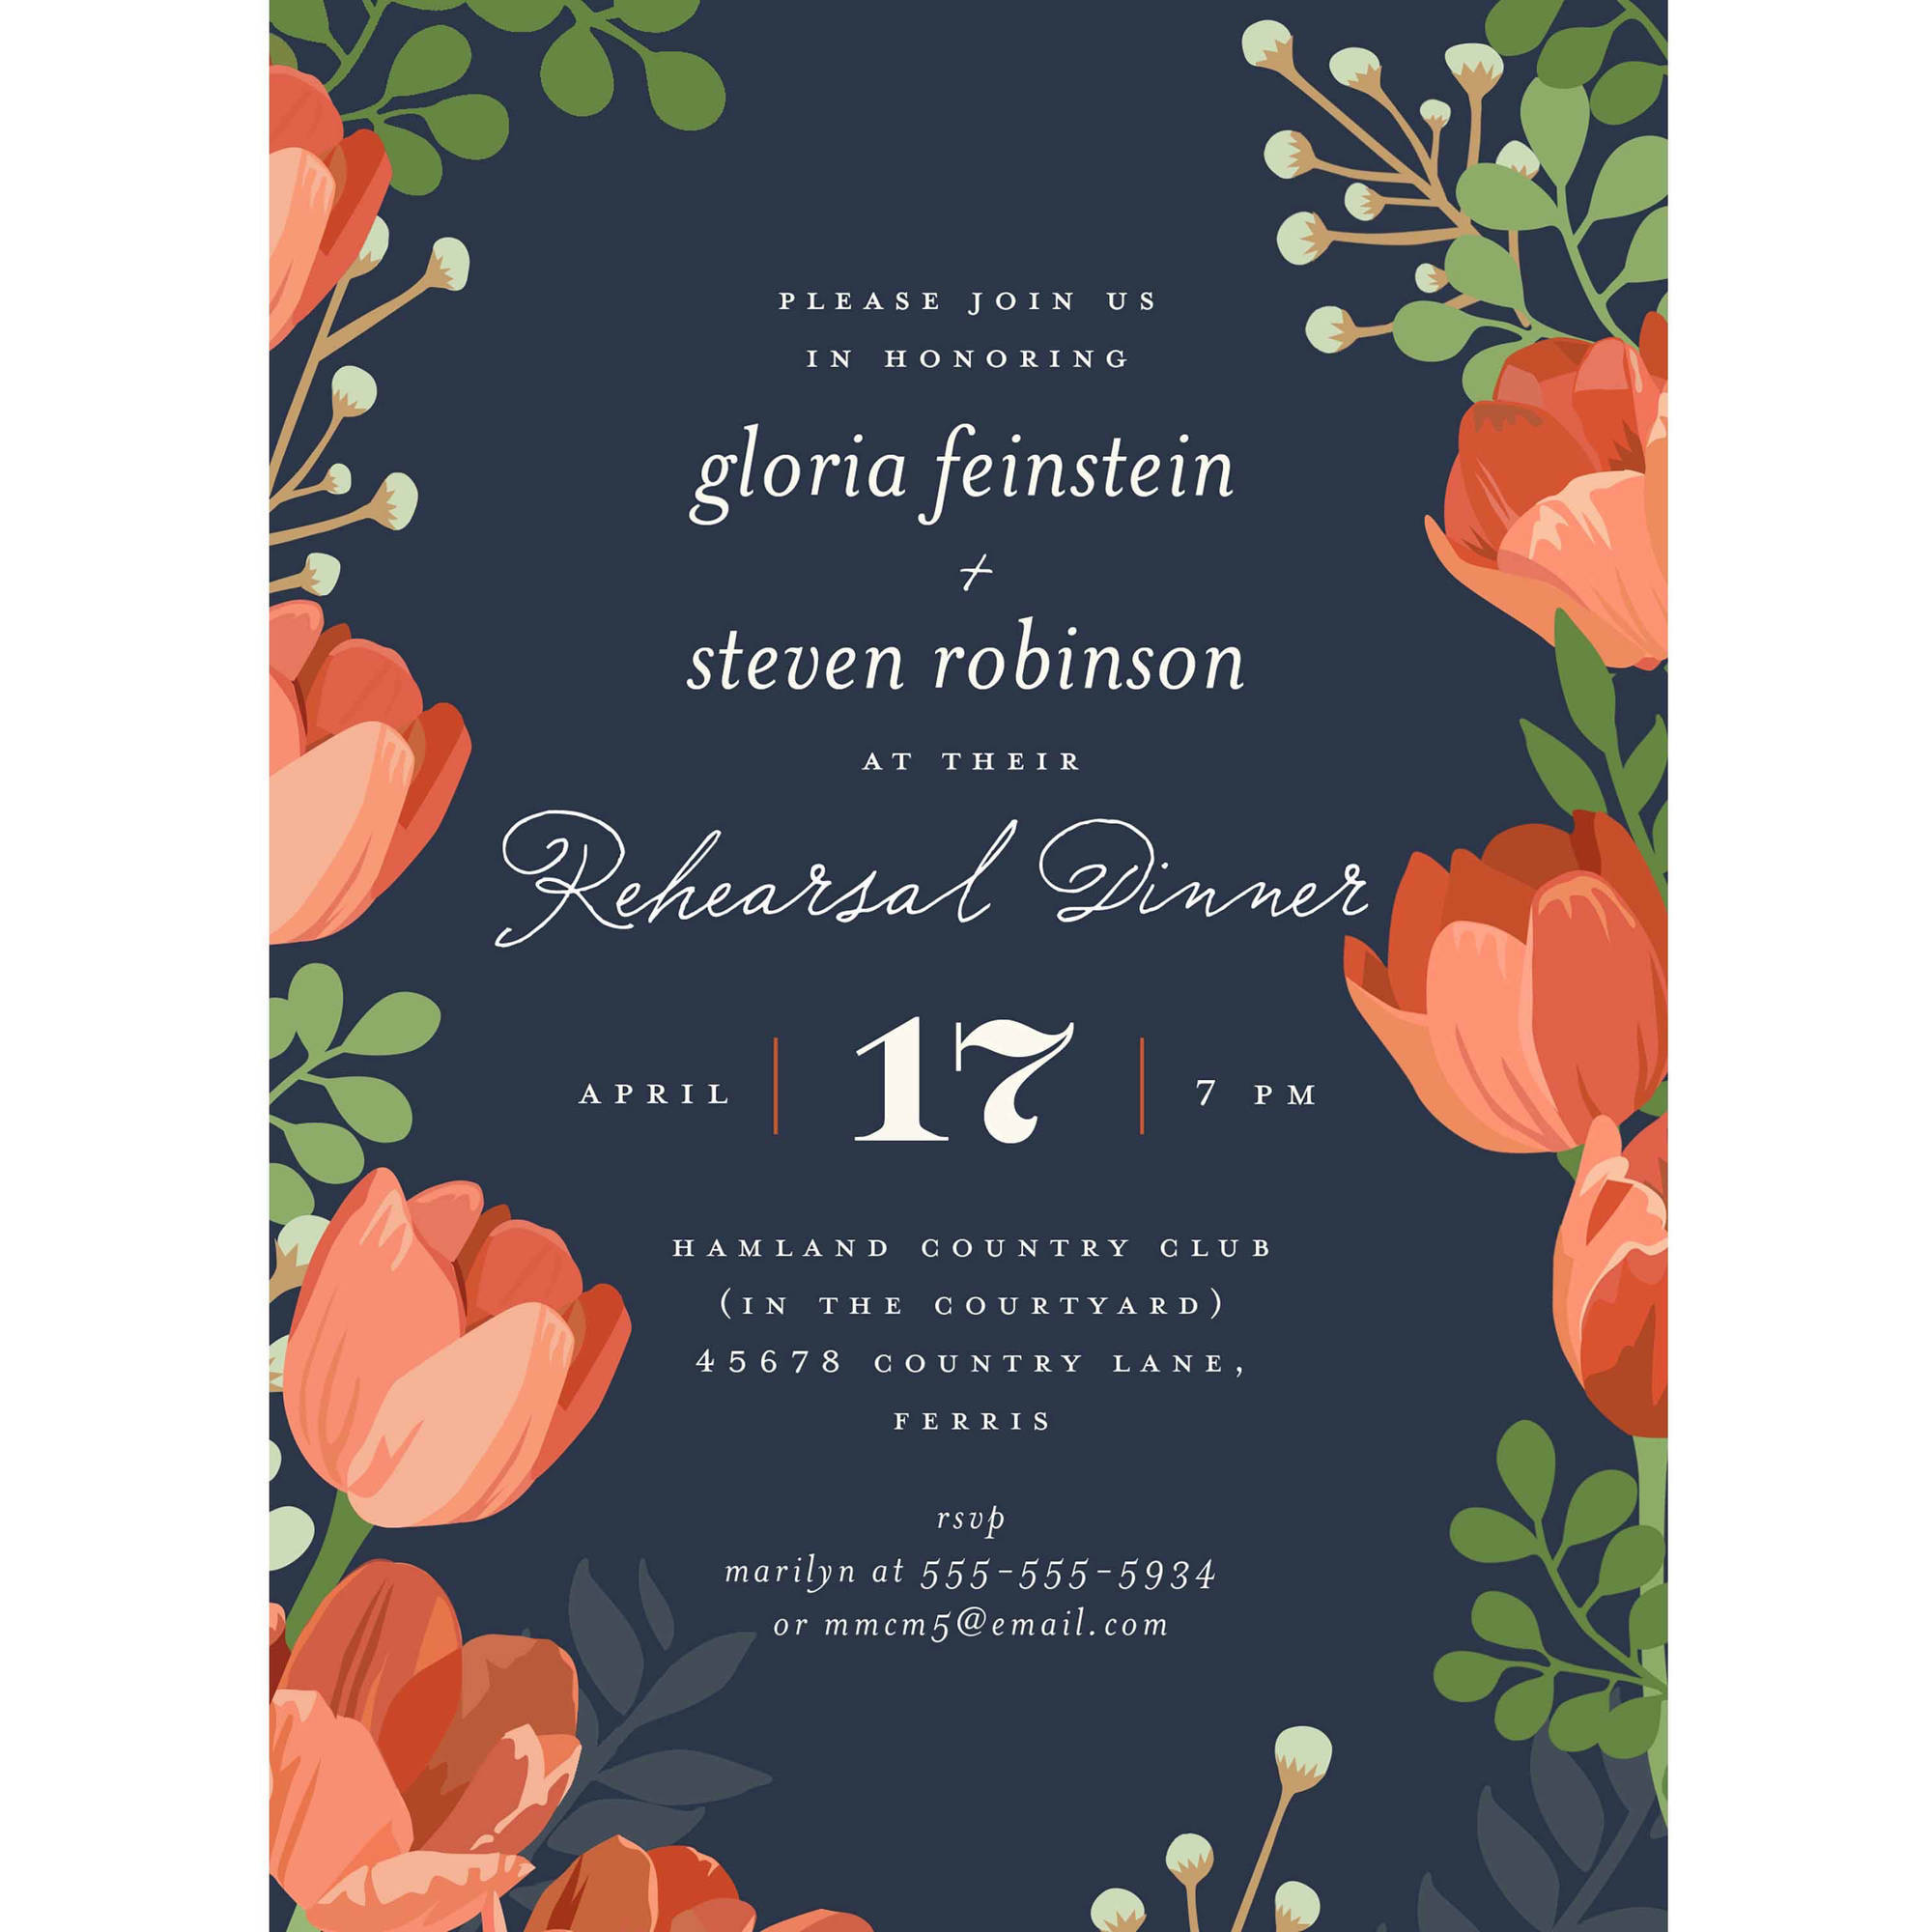 Rehearsal Dinner Bouquet Party Invite Standard Rehearsal Dinner -  Walmart.com - Walmart.com